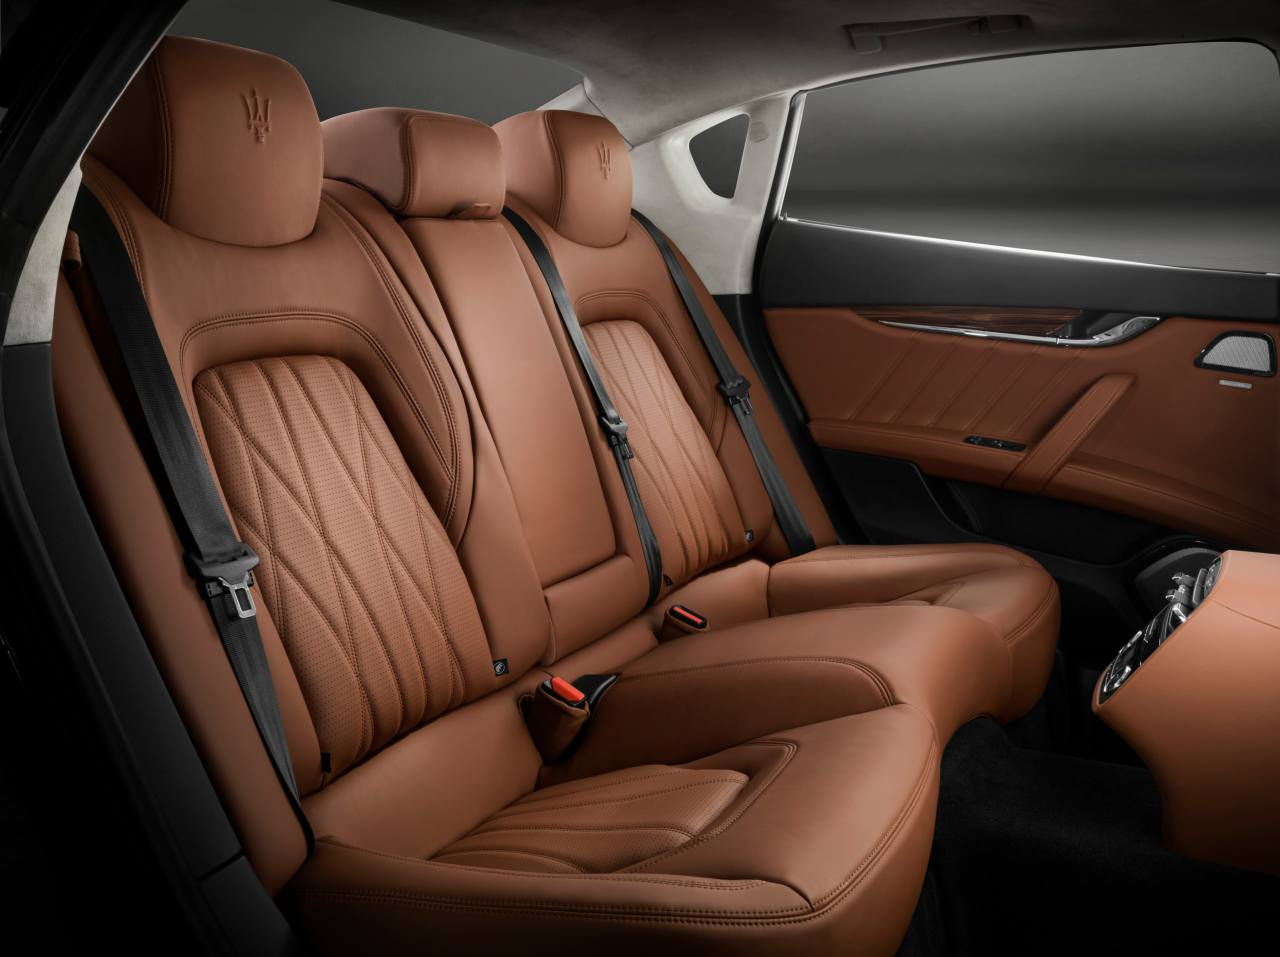 The 2019 version of the Quattroporte gets new colours, wheel designs and interior veneers, redesigned gearshift lever and Pieno Fiore natural leather interiors.